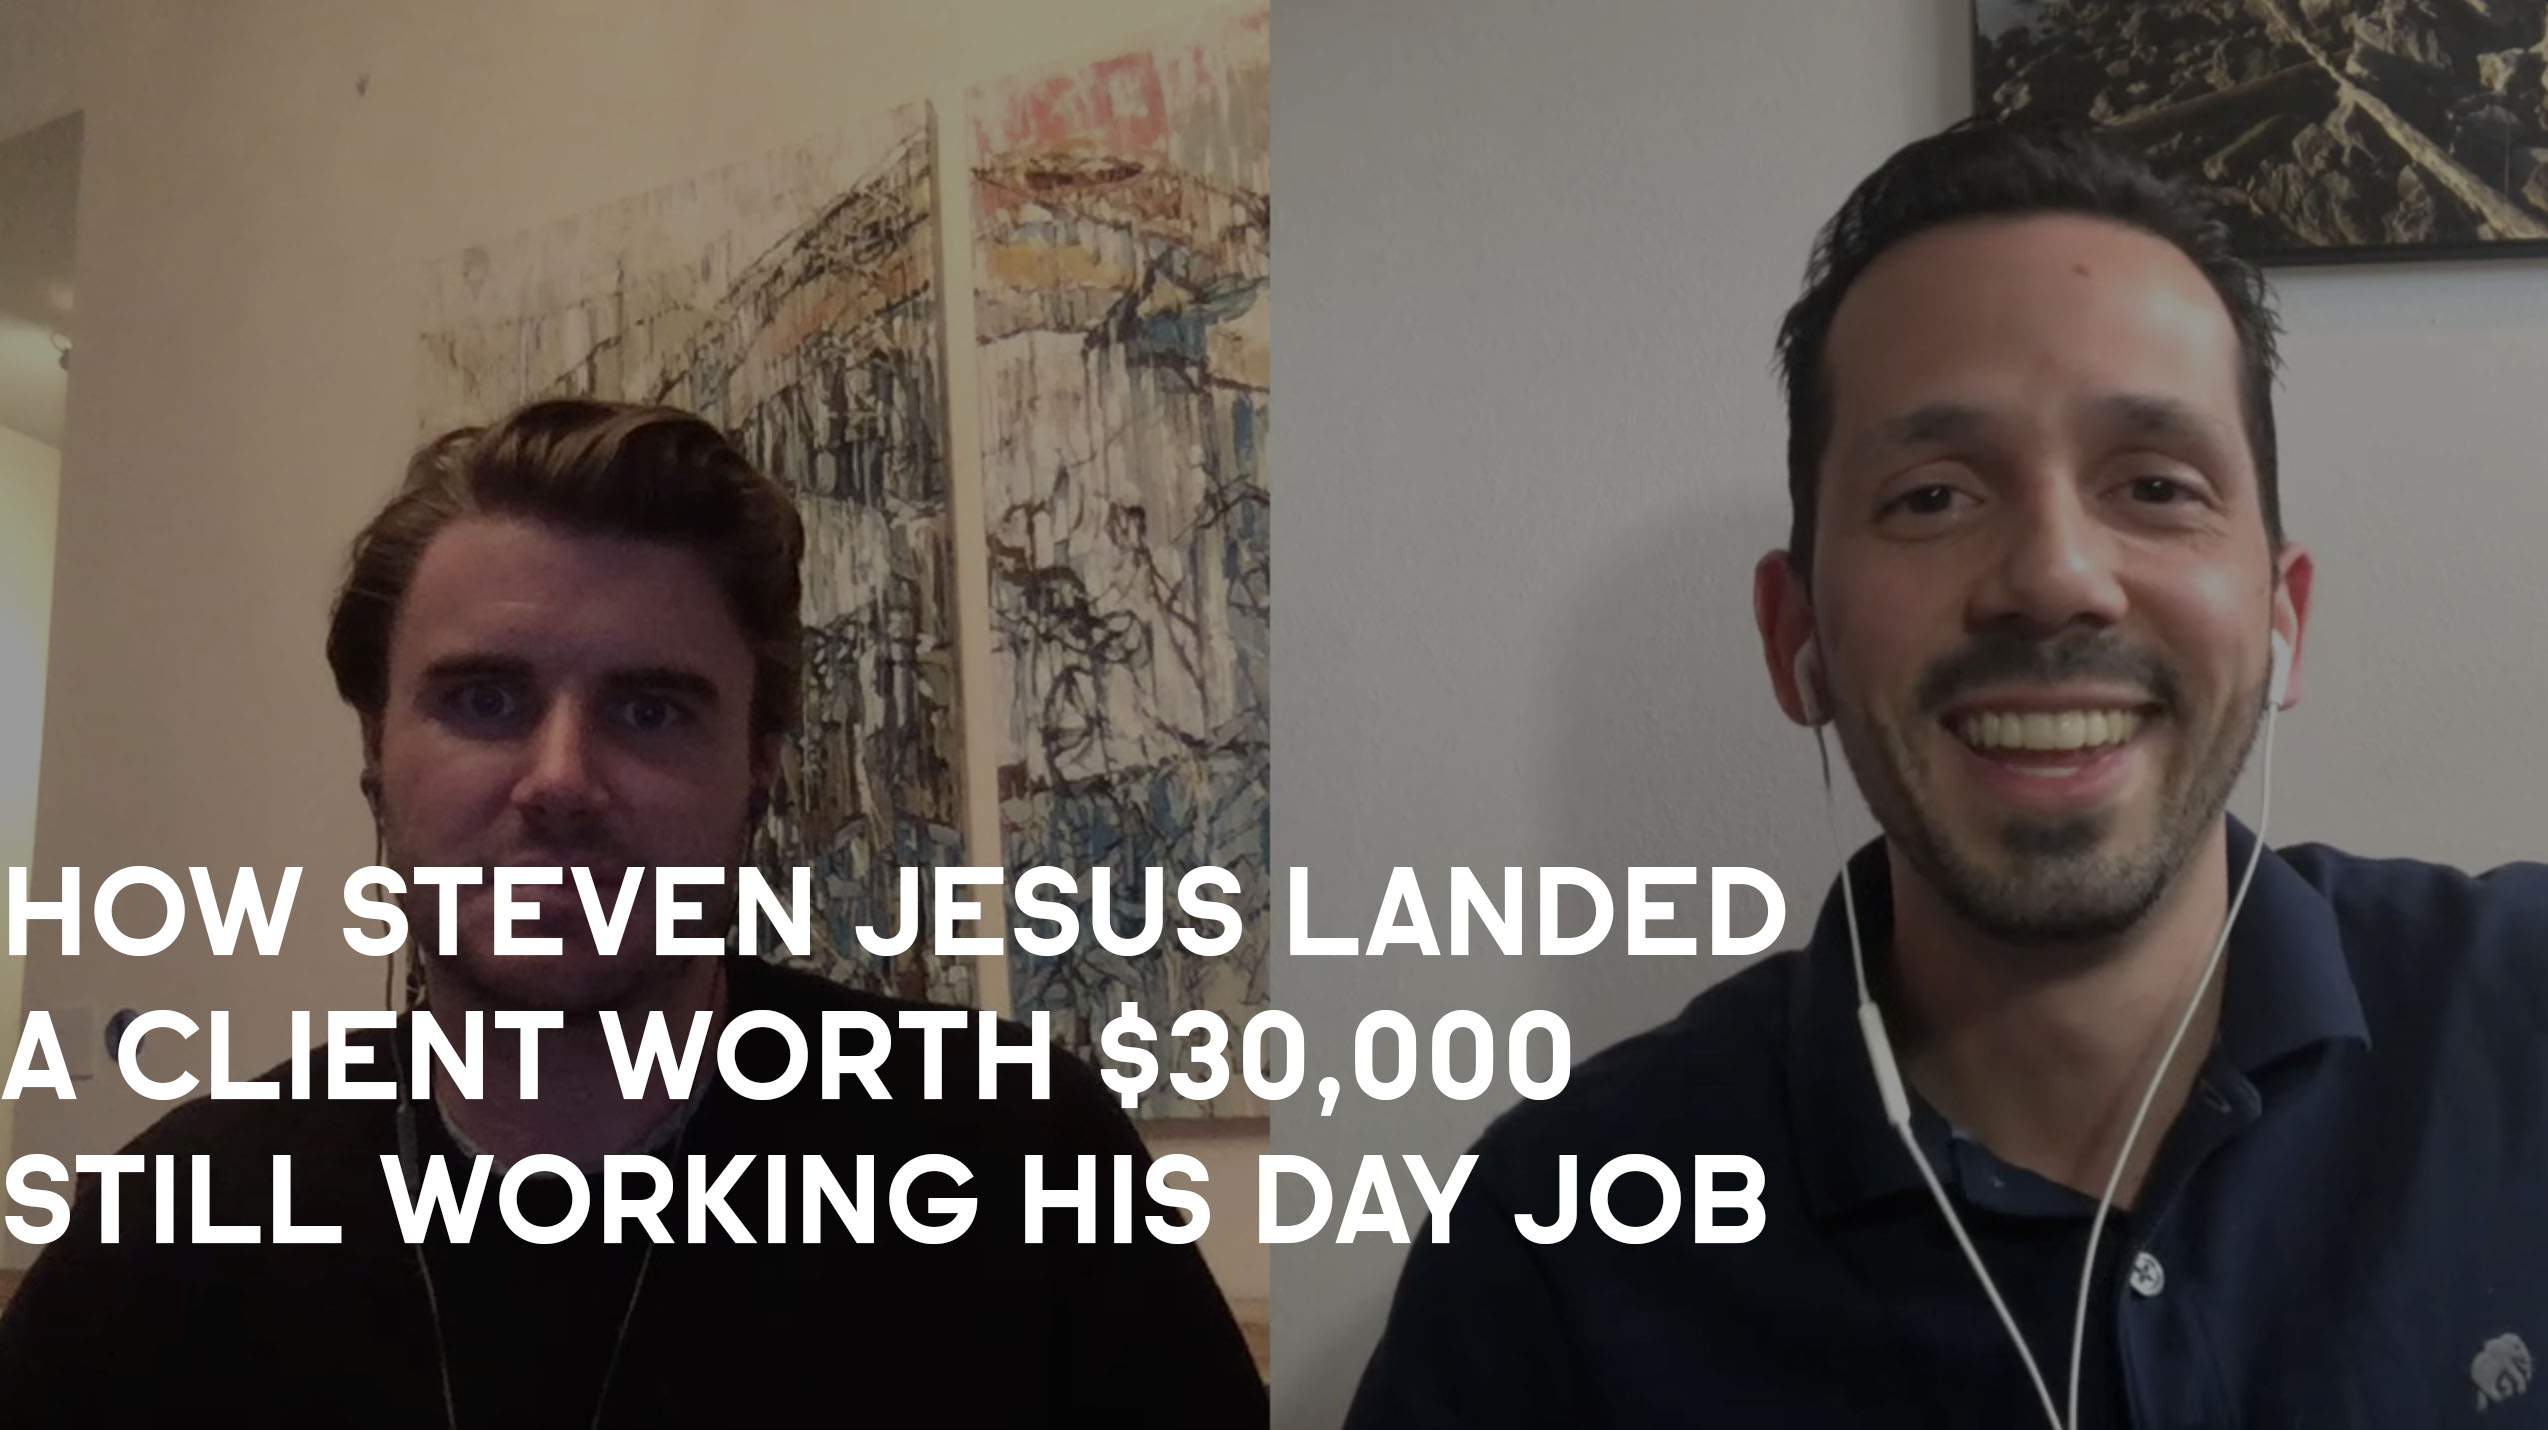 How Steven Jesus Landed A Client Worth $30,000 Still Working His Day Job